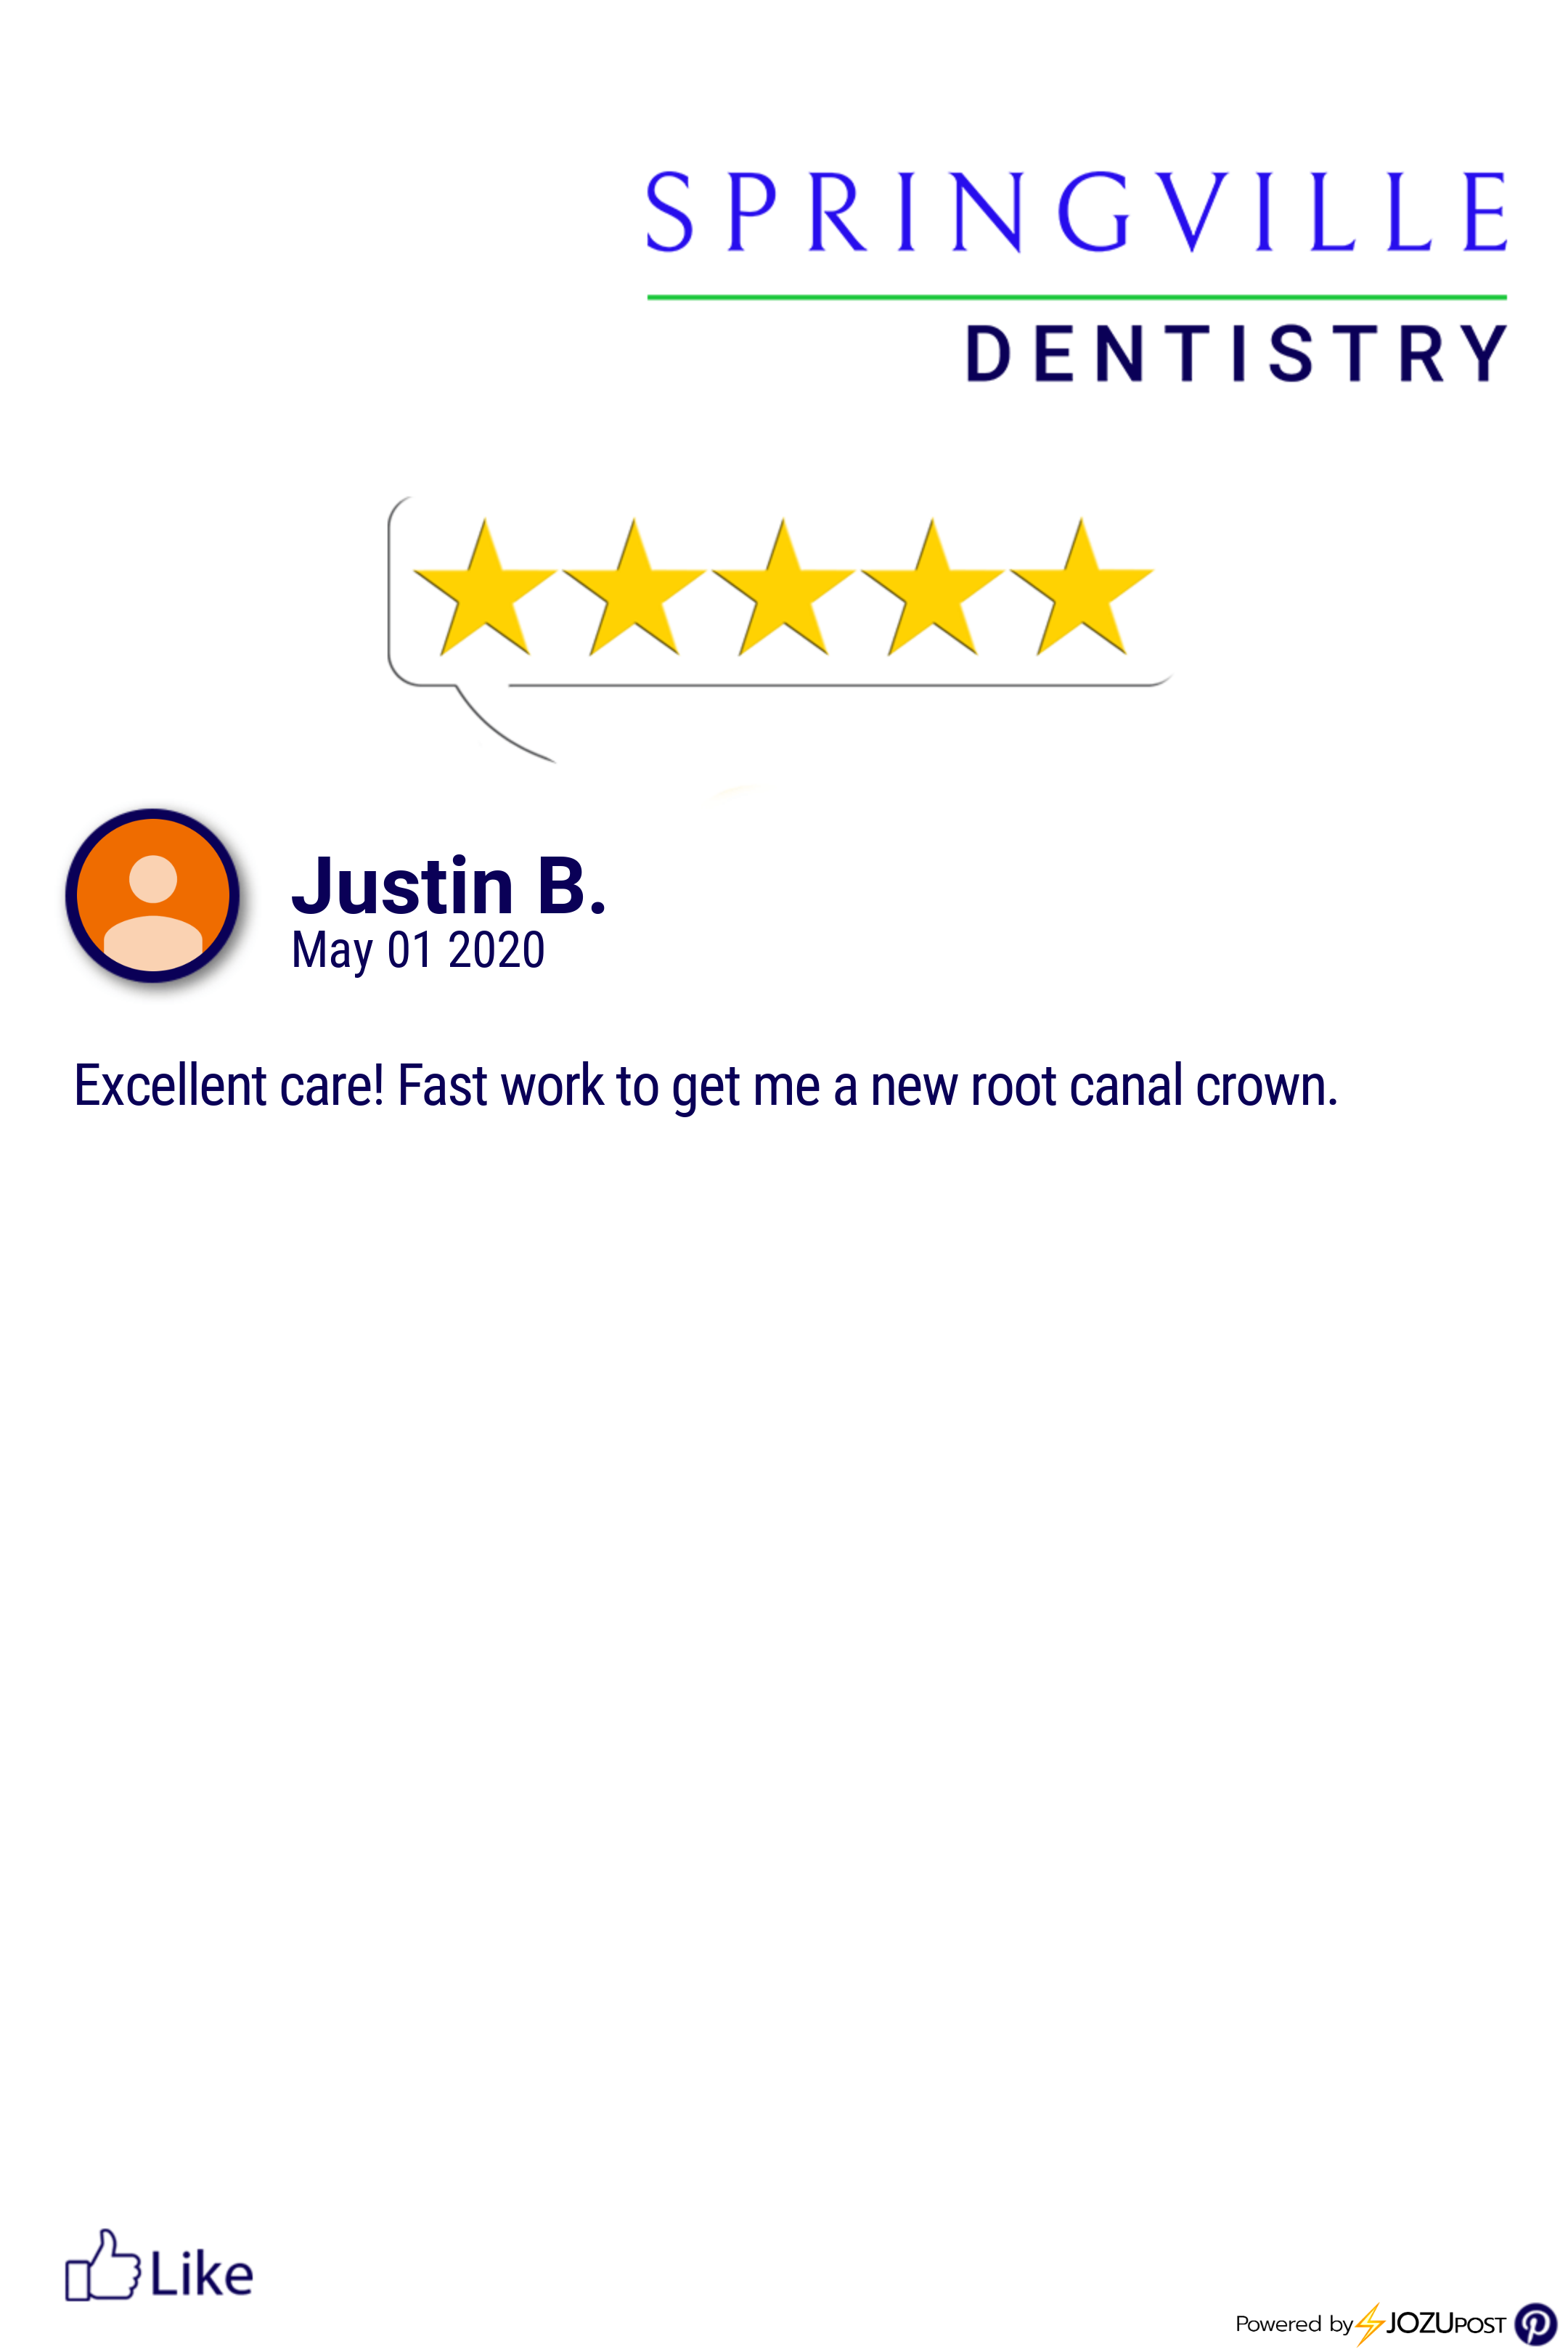 We Appreciate Our Patients Here Is Our Latest Five Star Review From Justin B We Love To Recognize Those Patients That Take T Dentistry Springville Root Canal